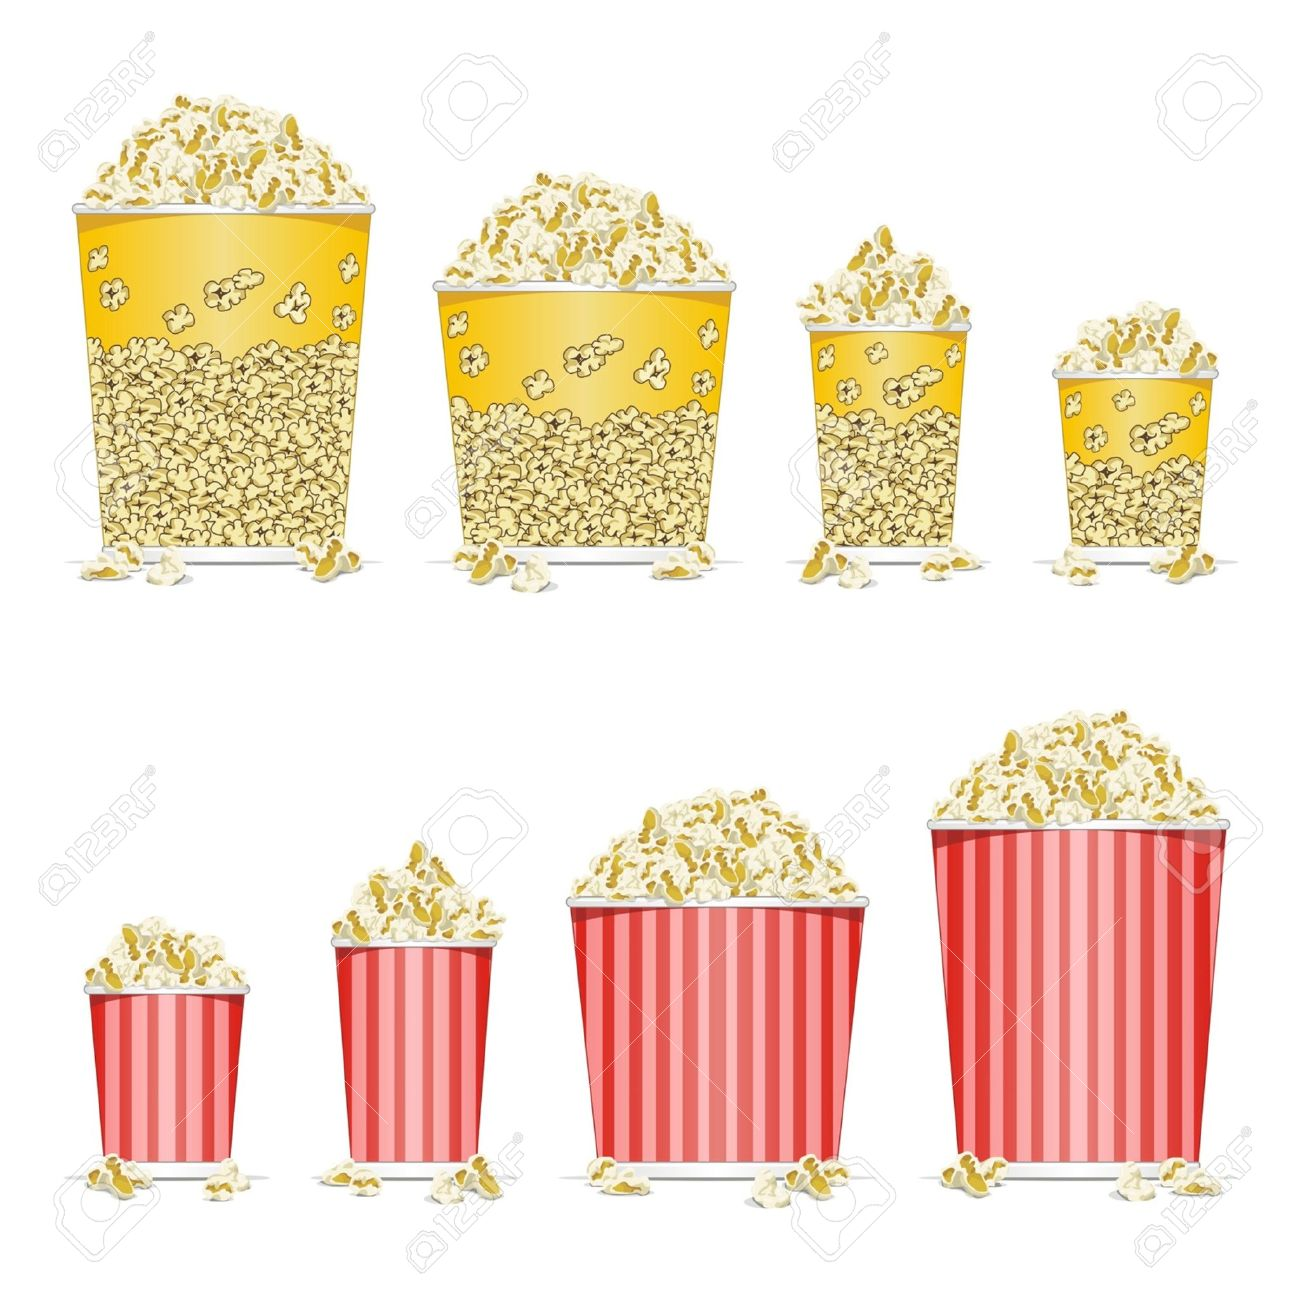 Popcorn Box Stock Photos & Pictures. Royalty Free Popcorn Box ...